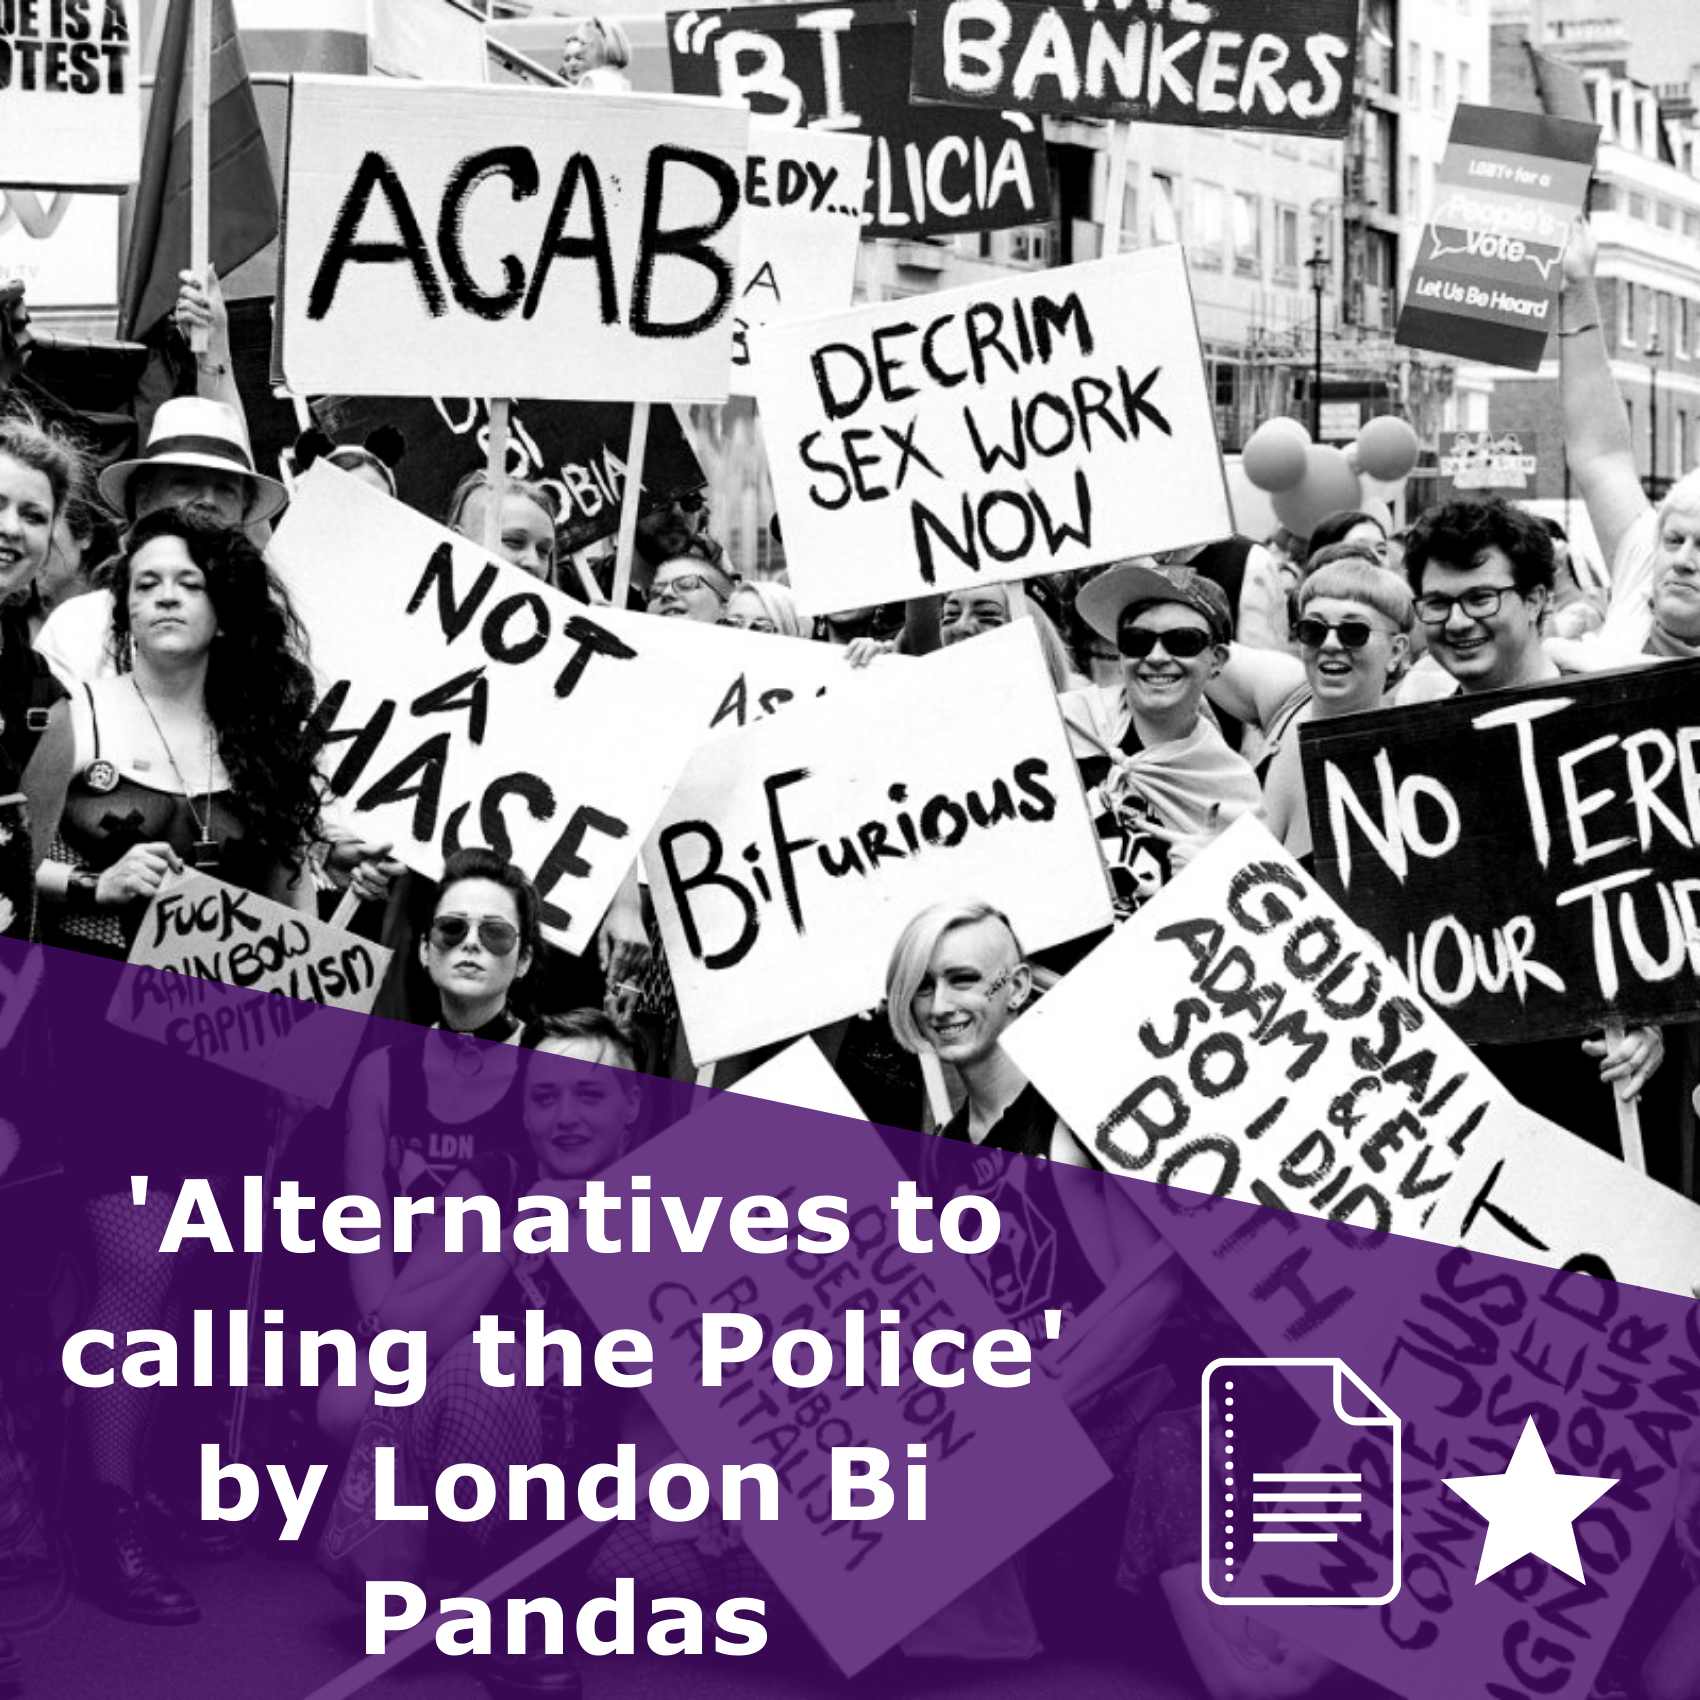 Alternatives to calling the police by London Bi Pandas, article rated 1 star